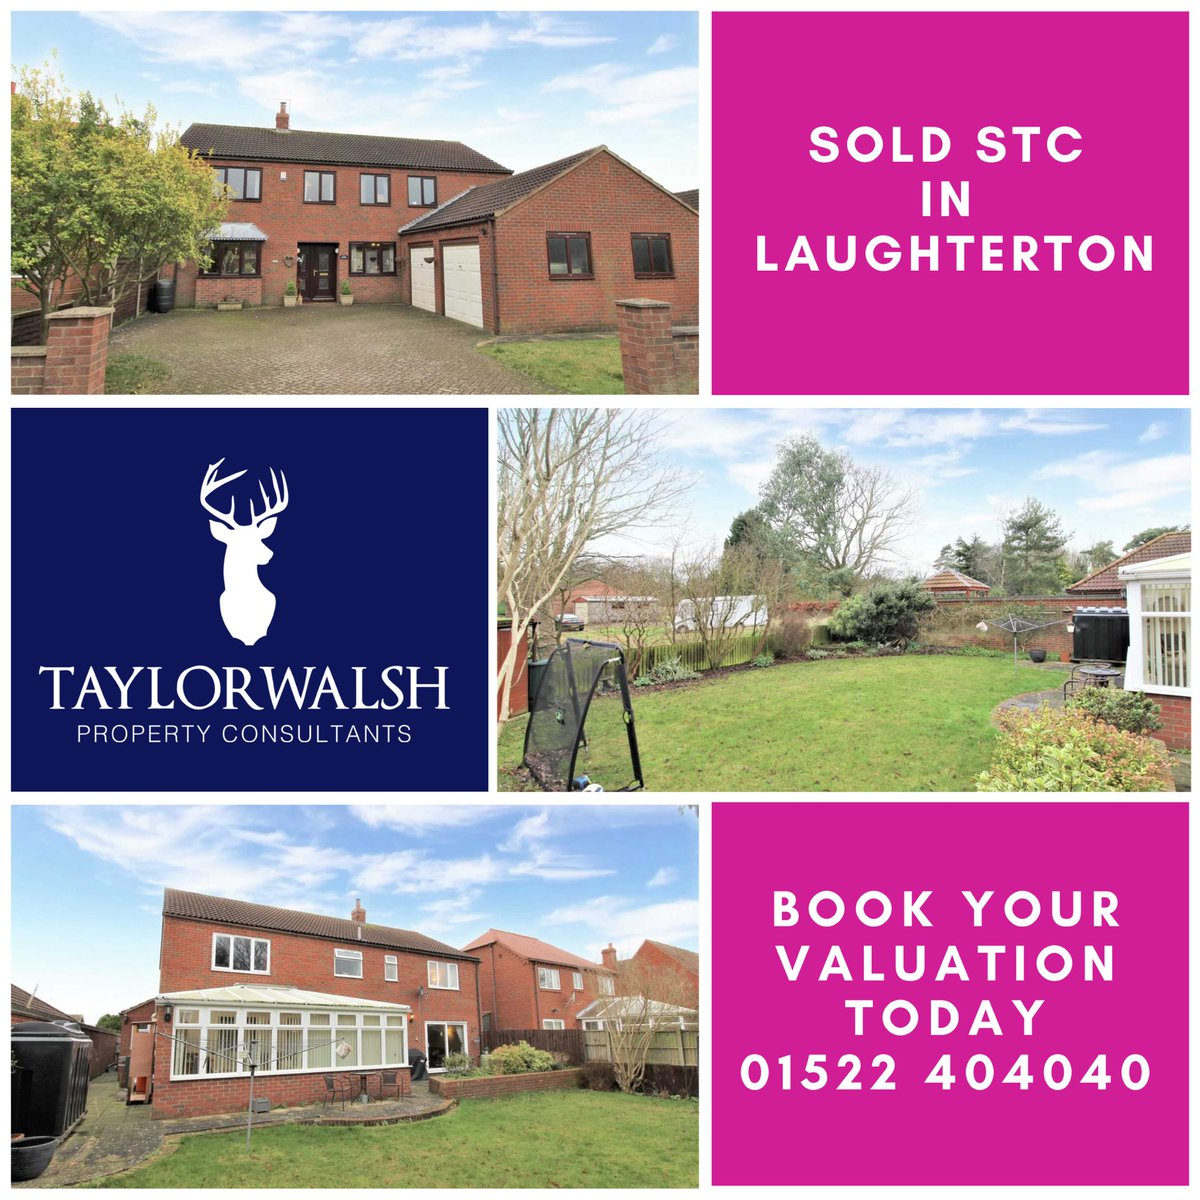 SOUTHSIDE, MARSH LANE, #LAUGHTERTON #LINCOLN #SOLD STC.  We are delighted to say that after a comprehensive marketing campaign, we have secured a great buyer for our client. Well done team @taylorwalsh_lincoln   Thinking of selling, think Taylor Walsh, 01522 404040.   #Property https://t.co/KW8ob7o4rF